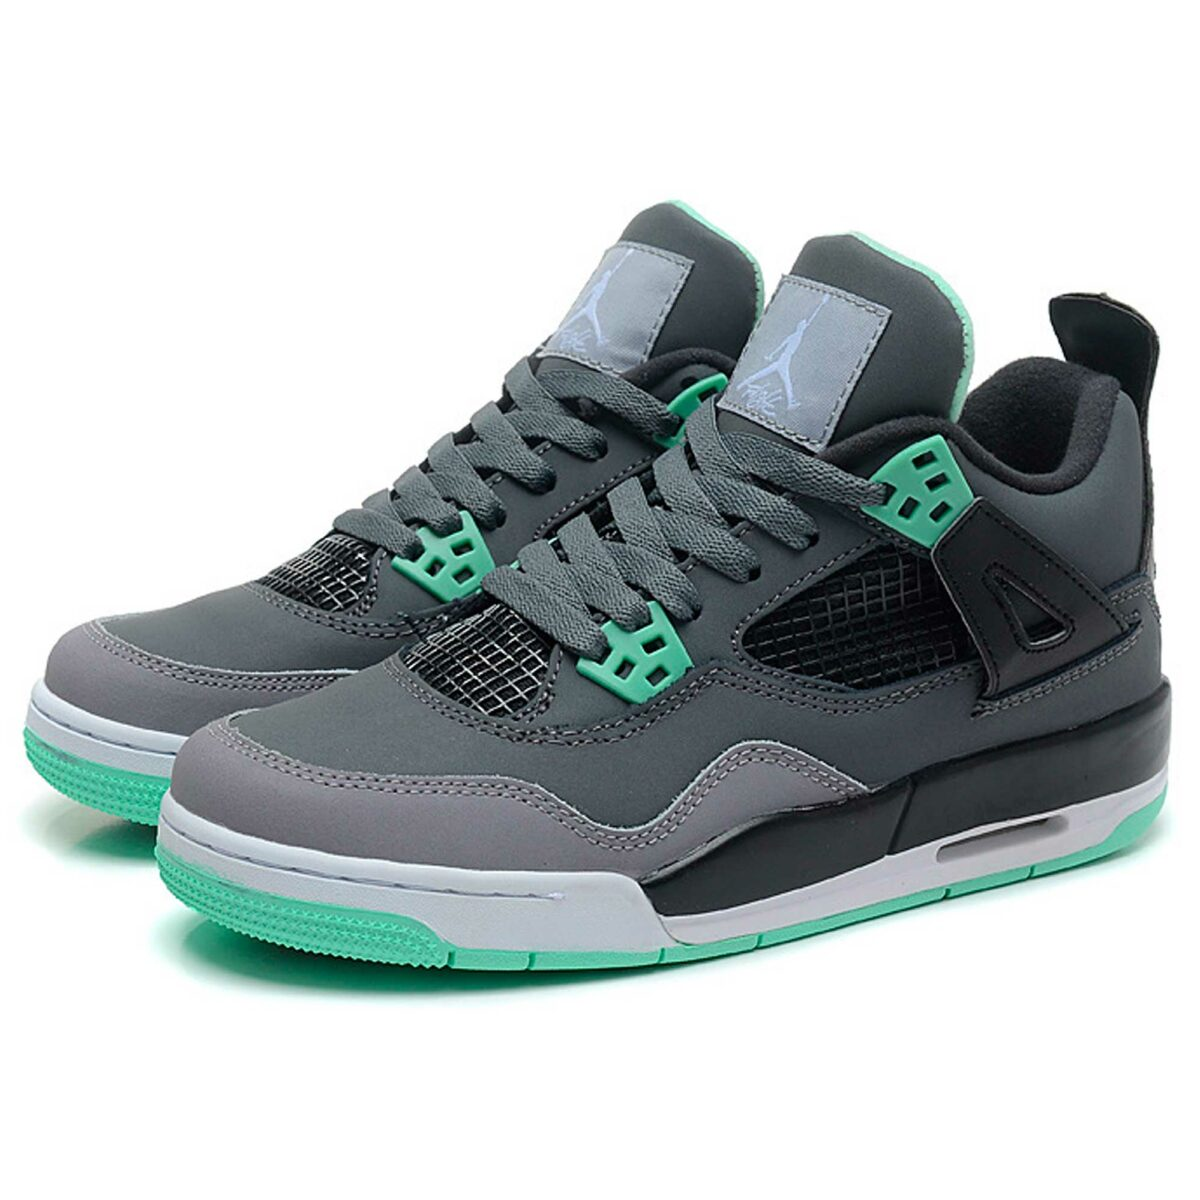 nike air jordan 4 retro dark grey green glow 308497-033 купить